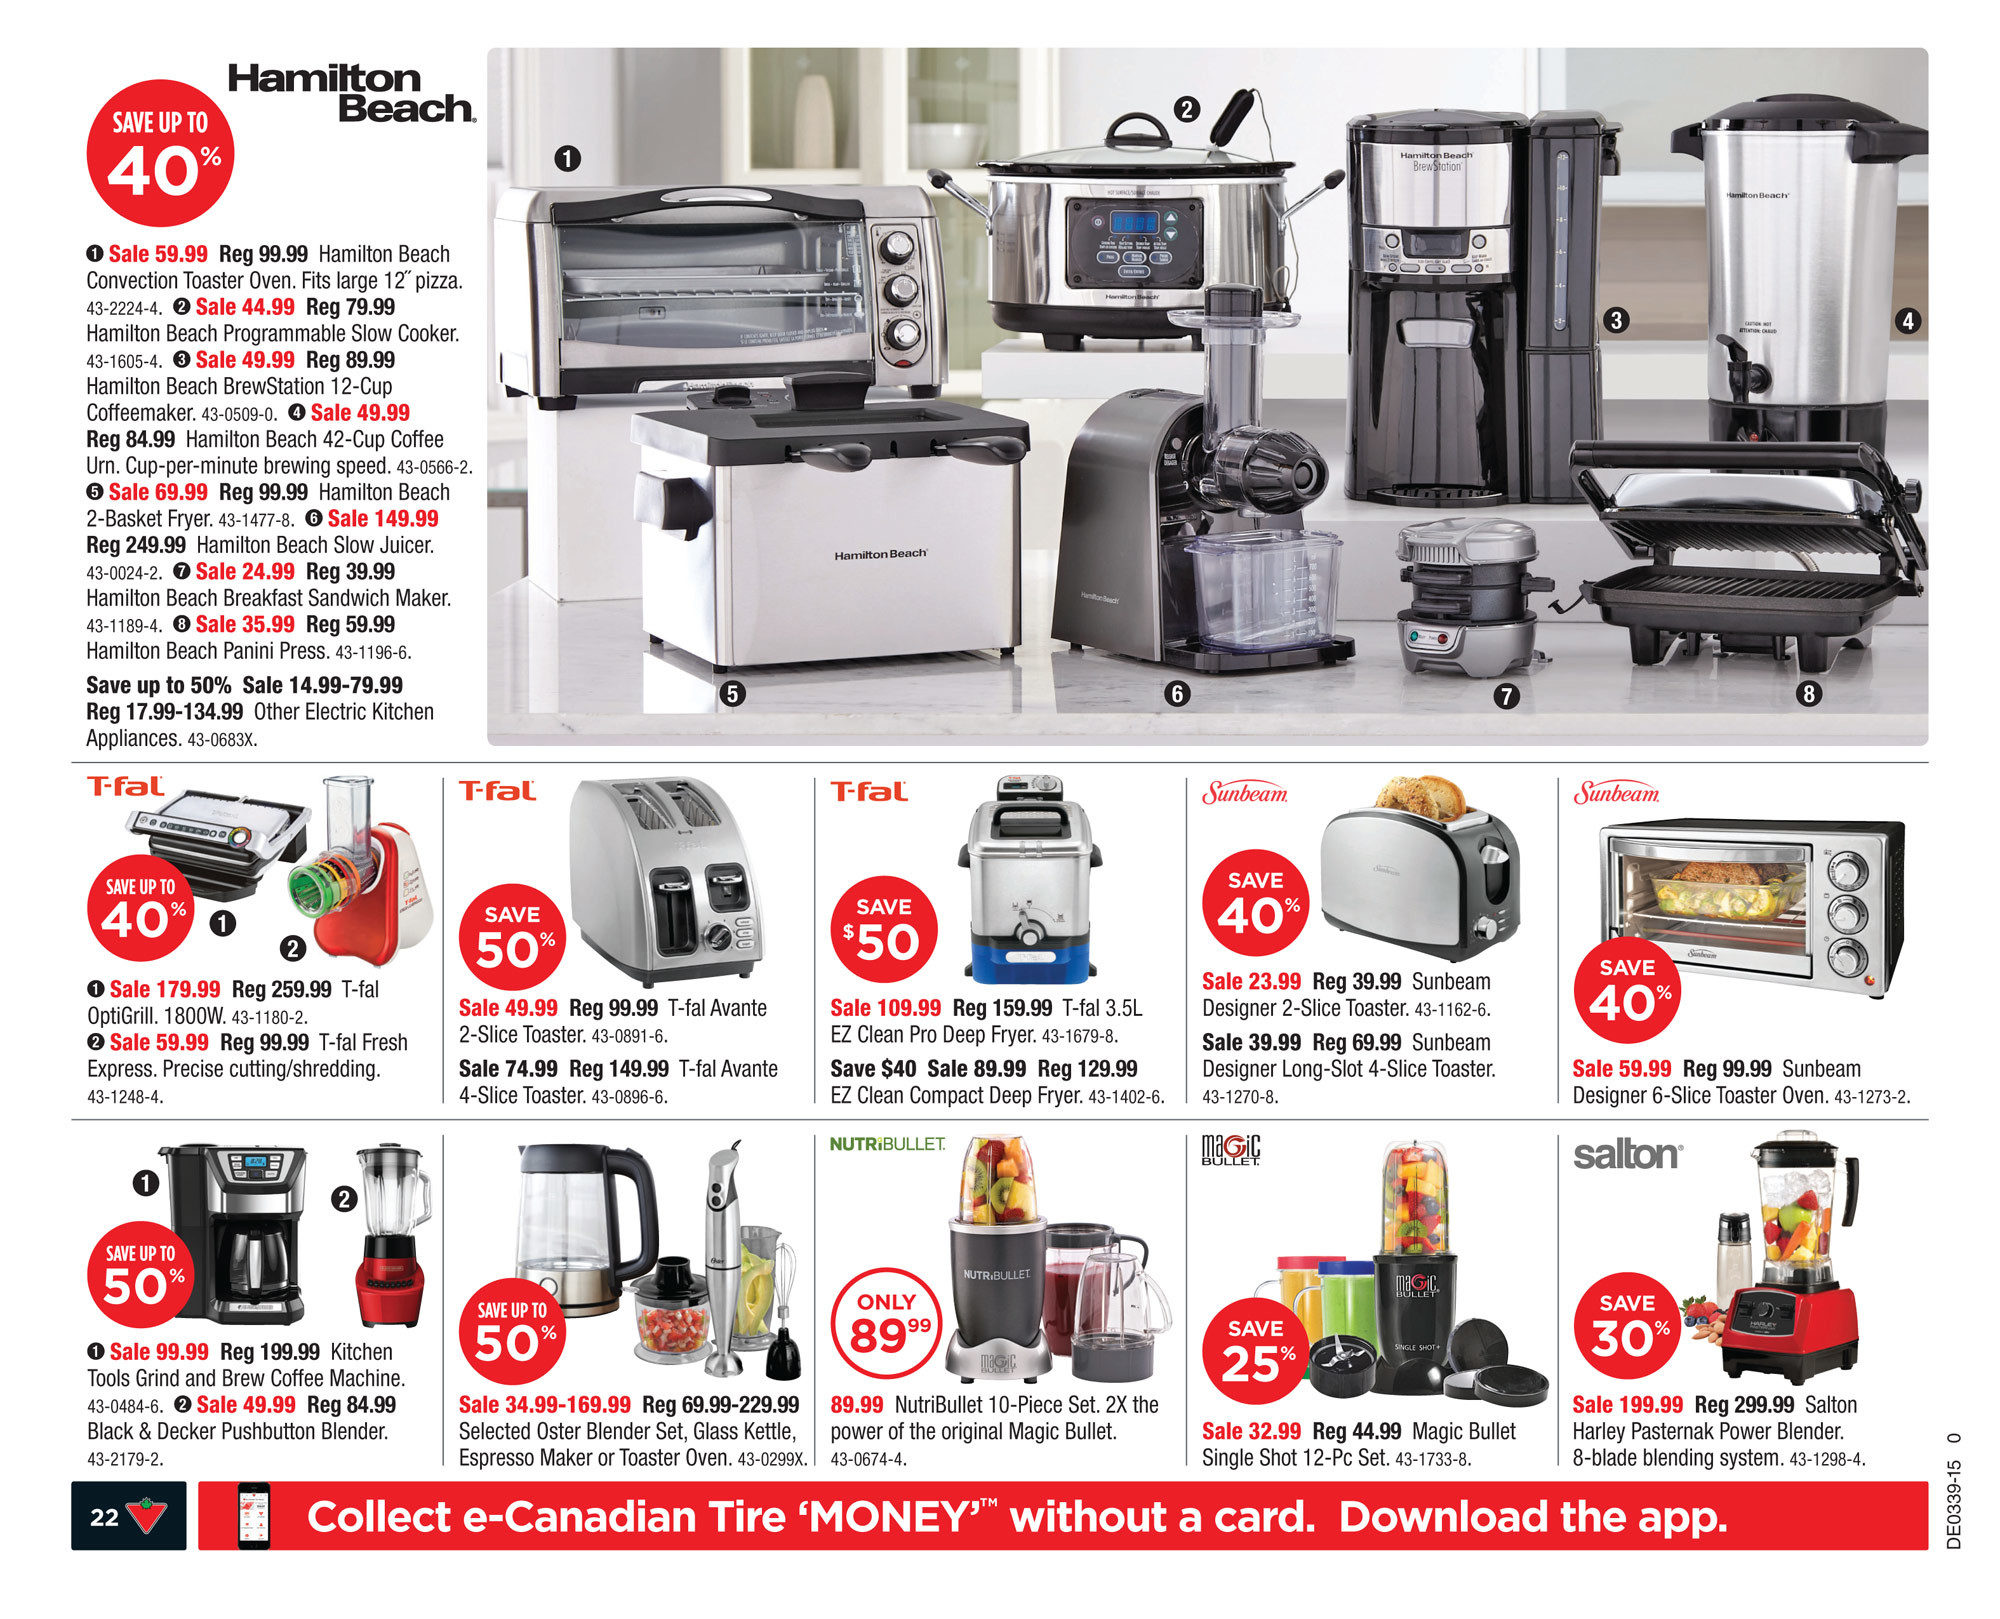 Canadian Tire Weekly Flyer Back To It Sep 25 Oct 1 Horse Power Insinkerator Garbage Disposal Thousand Oaks Repair